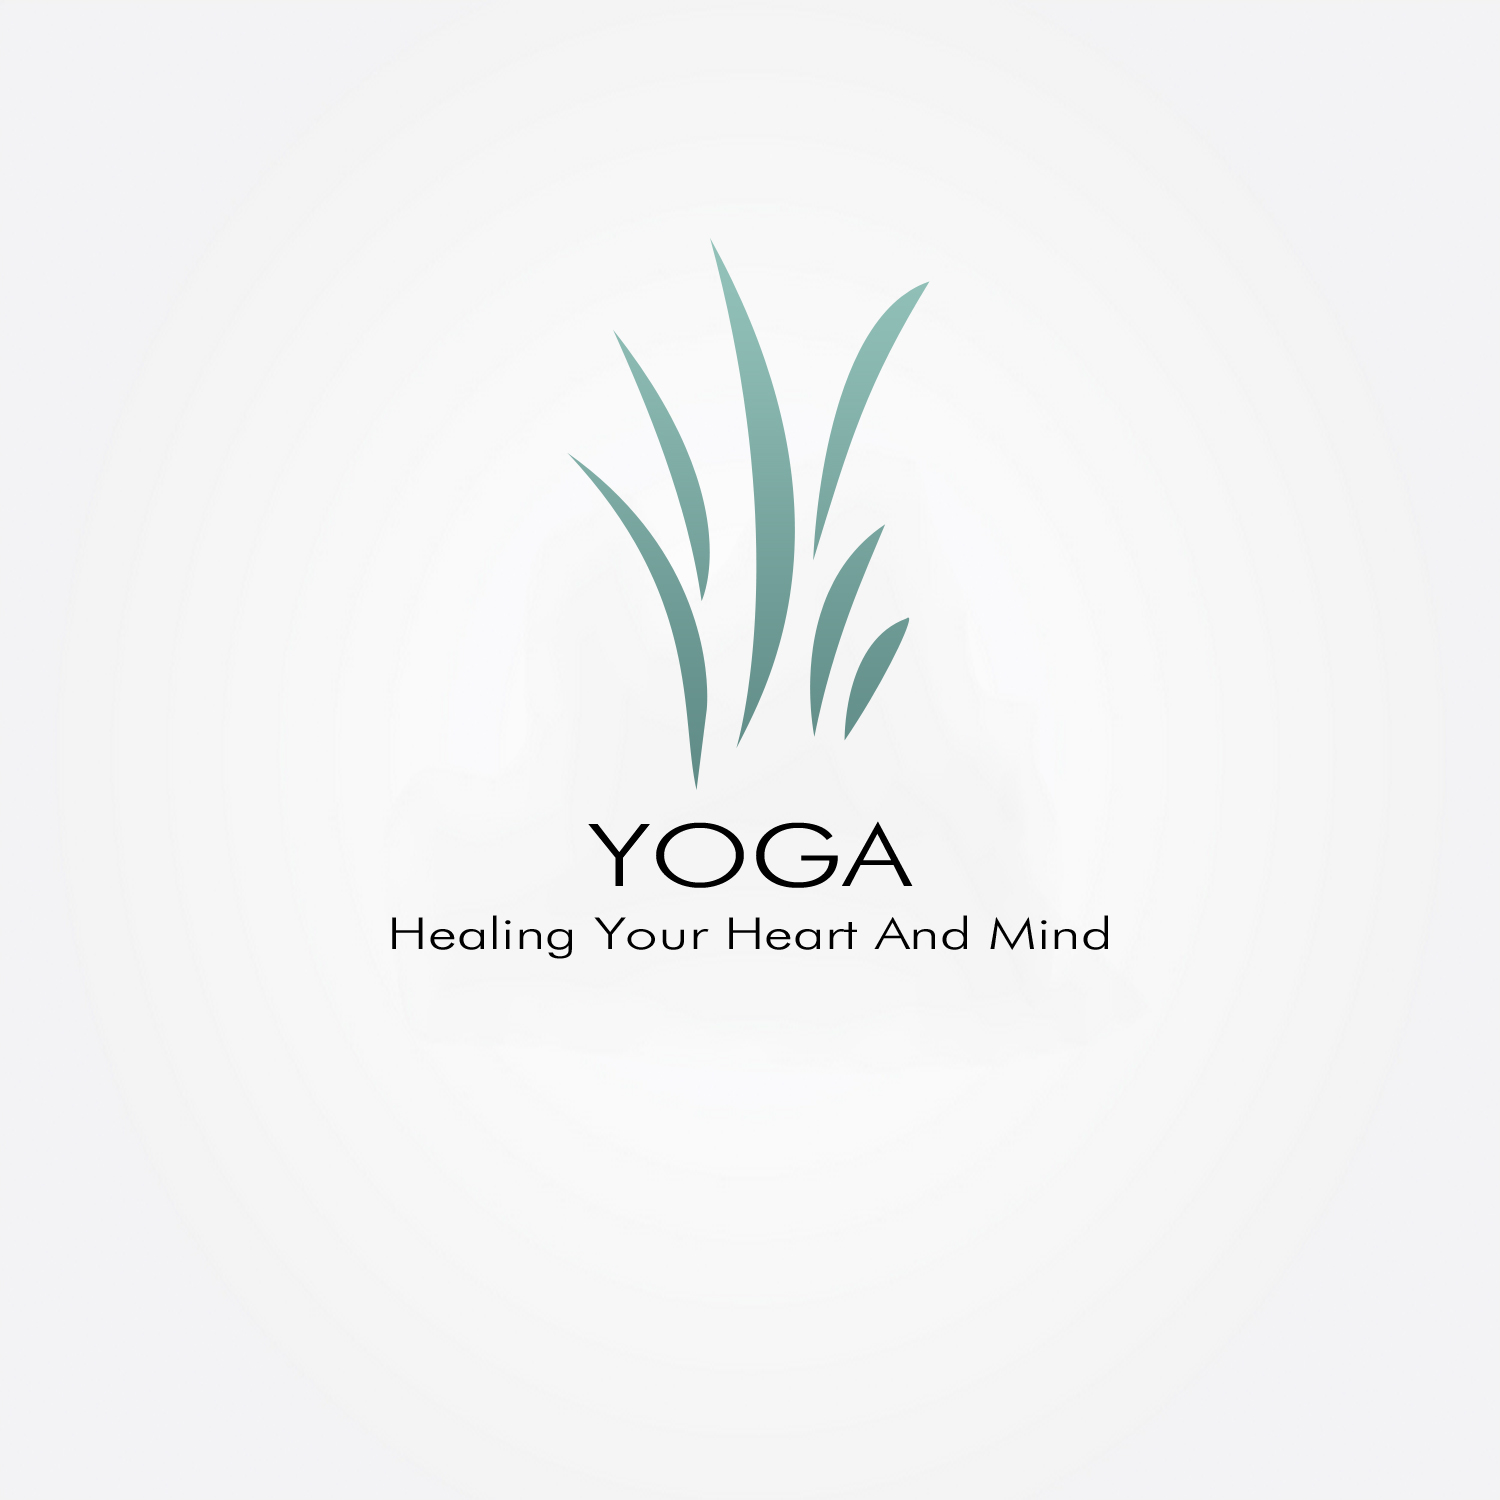 Concept Heart & Mind Yoga Logos | Creative Little Devil